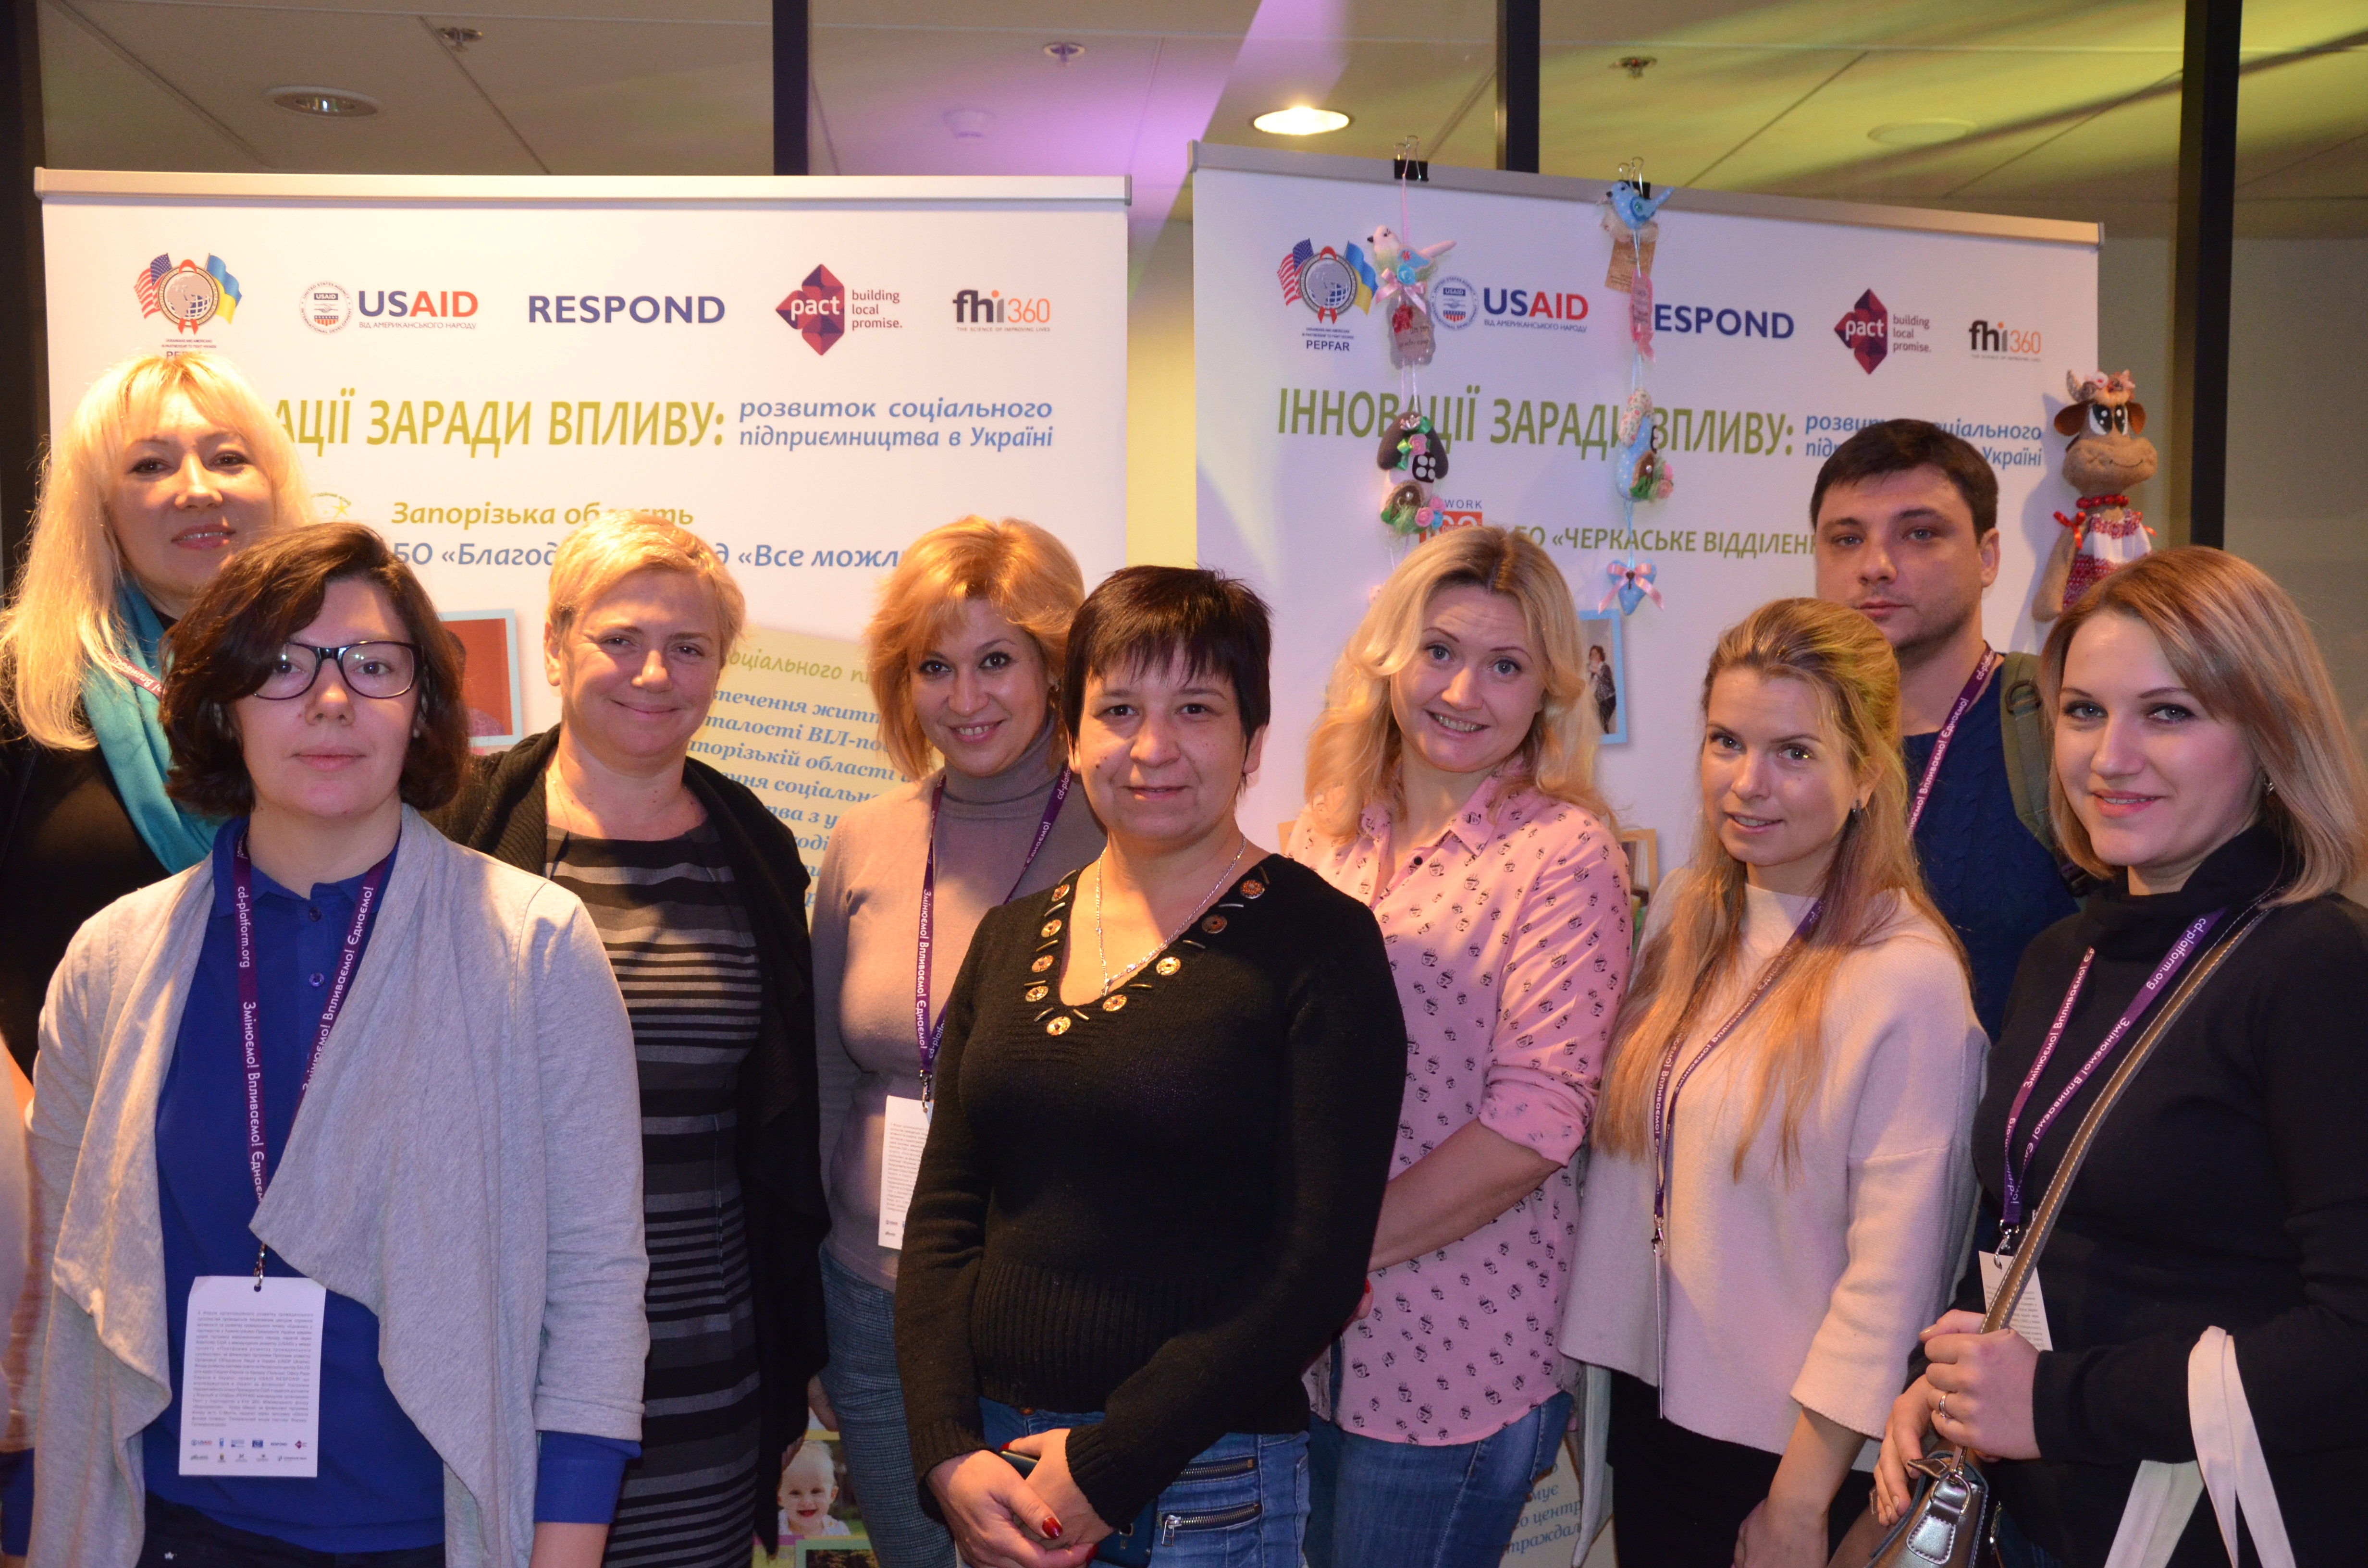 STUDIO OF OPPORTUNITIES: A NEW BEGINNING FOR A UKRAINIAN WOMAN LIVING WITH HIV